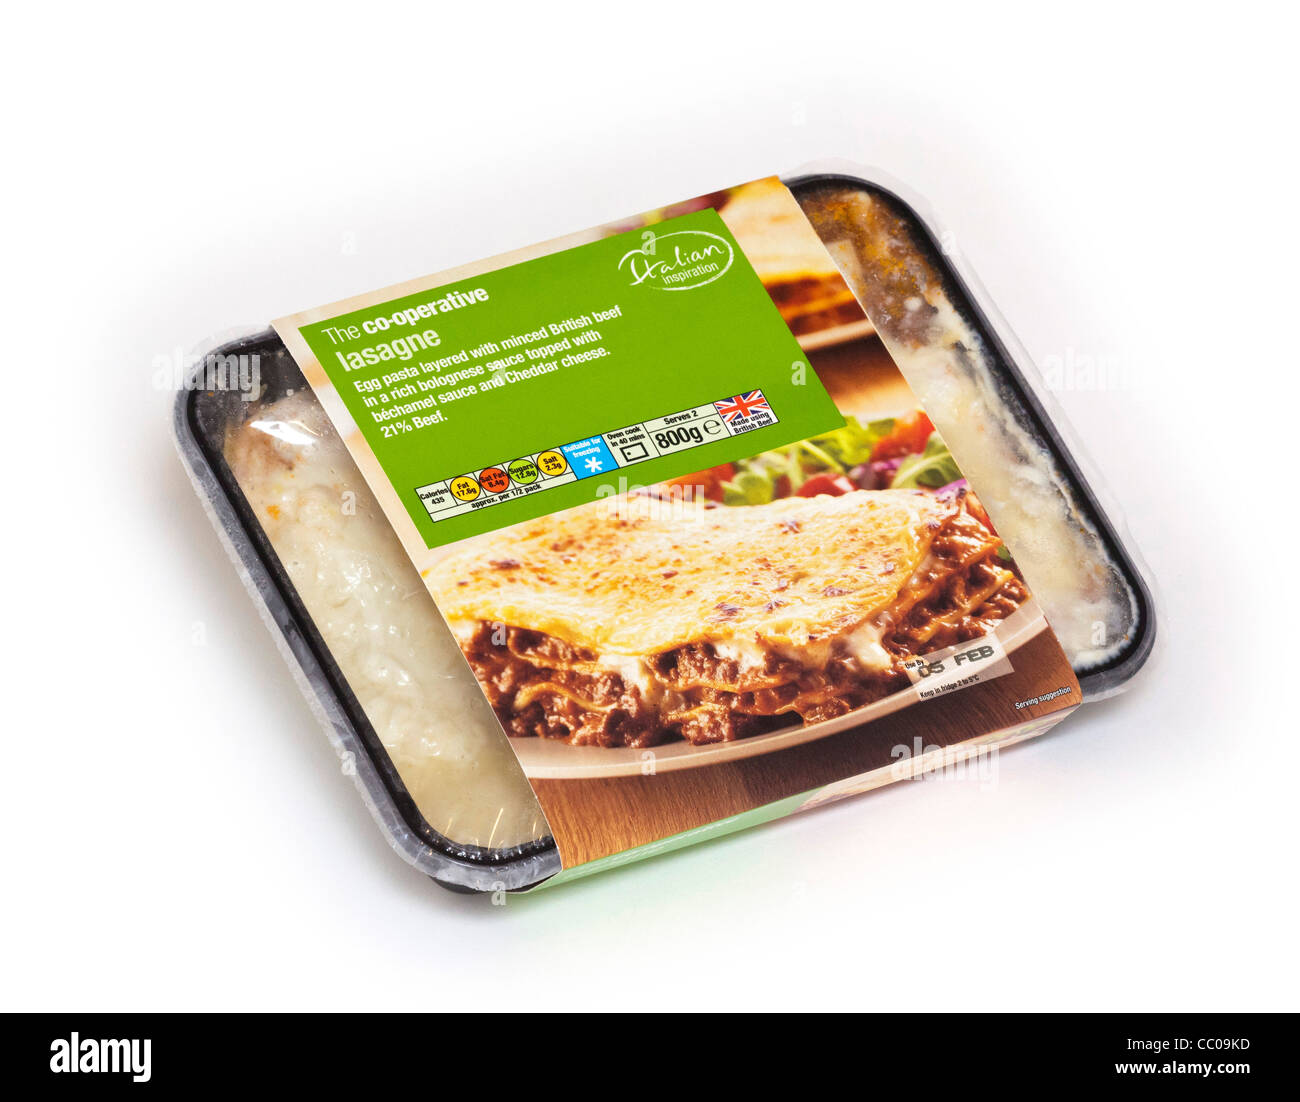 ready made meal or 'TV dinner' - Stock Image